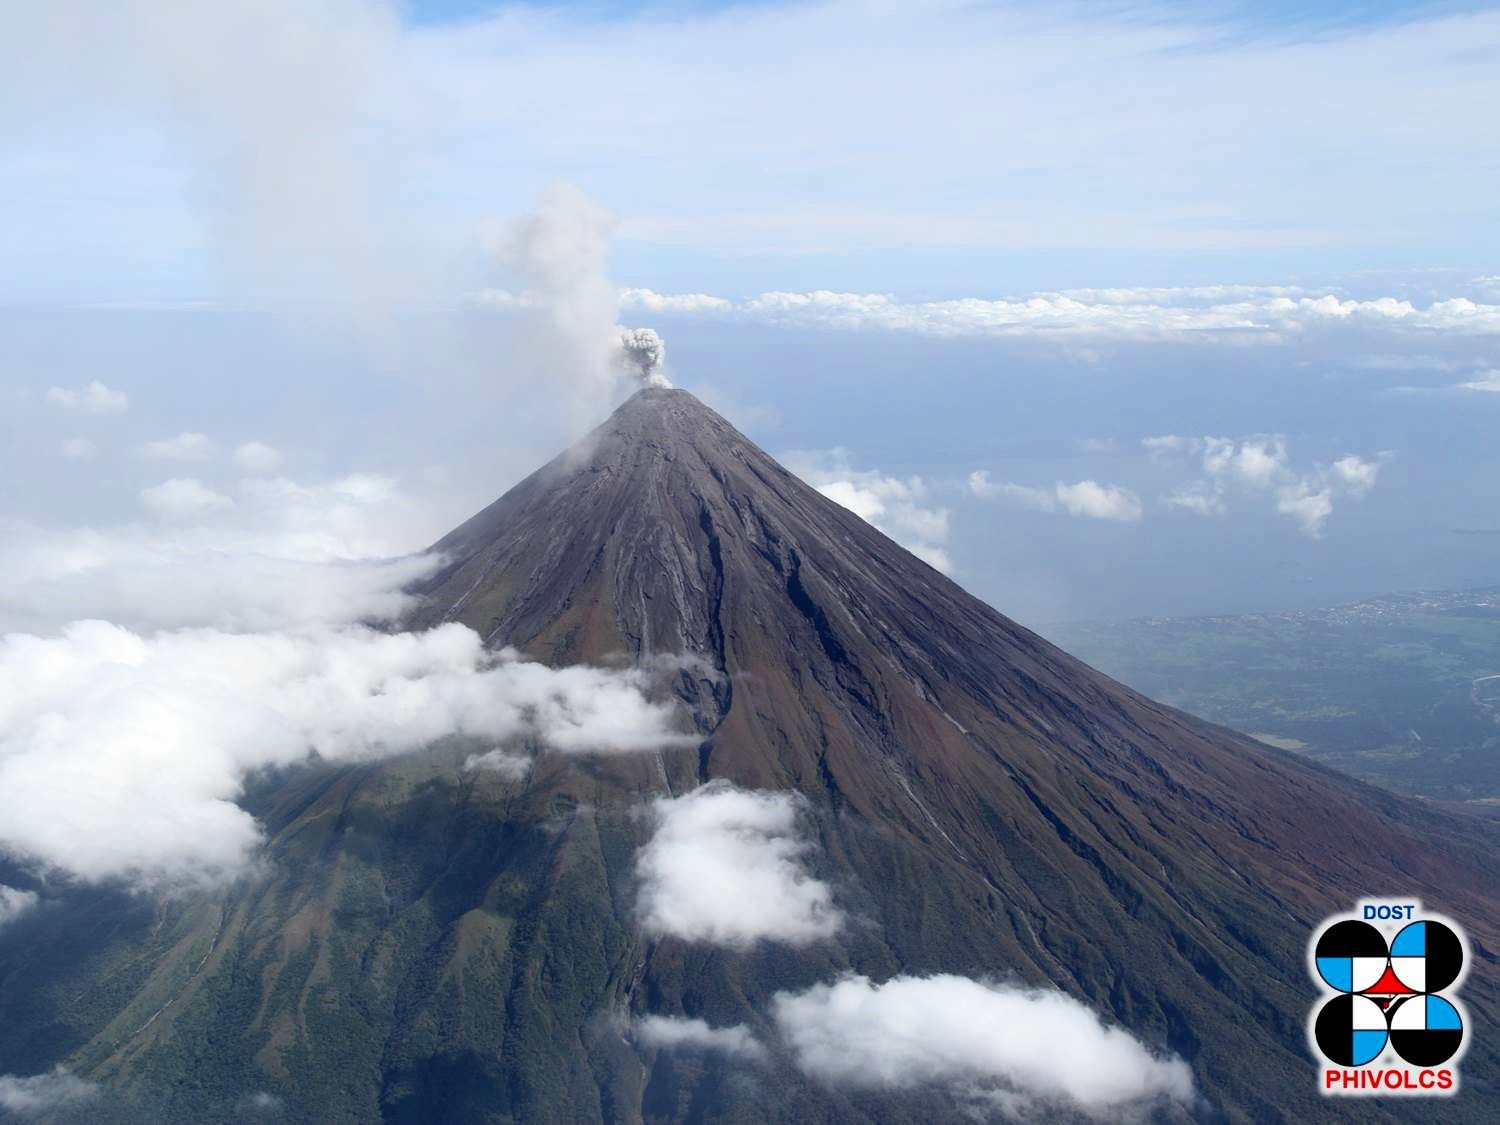 Le cône symétrique du Mayon, en alerte niveau 2 - photo archives Phivolcs 02.2018